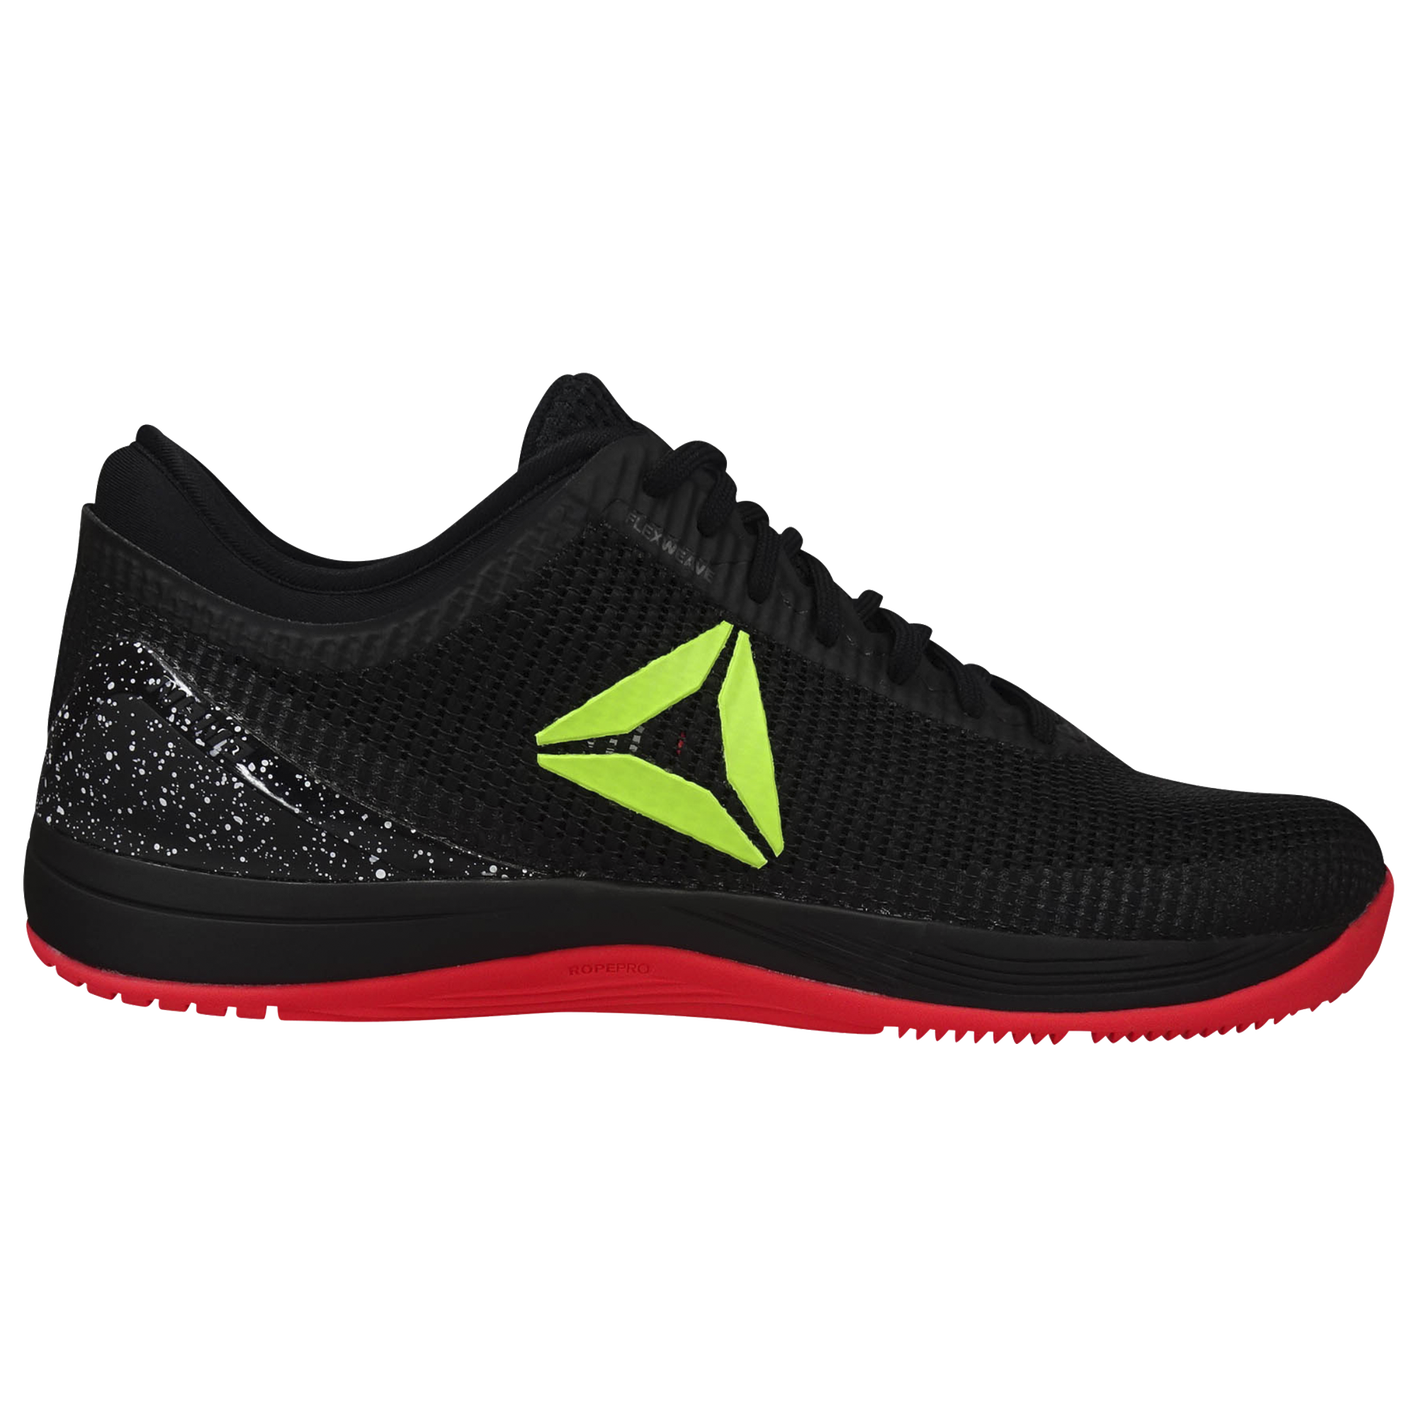 fa3cca5d712584 Reebok Crossfit Nano 8.0 - Men s - Training - Shoes - Black Neon Red ...